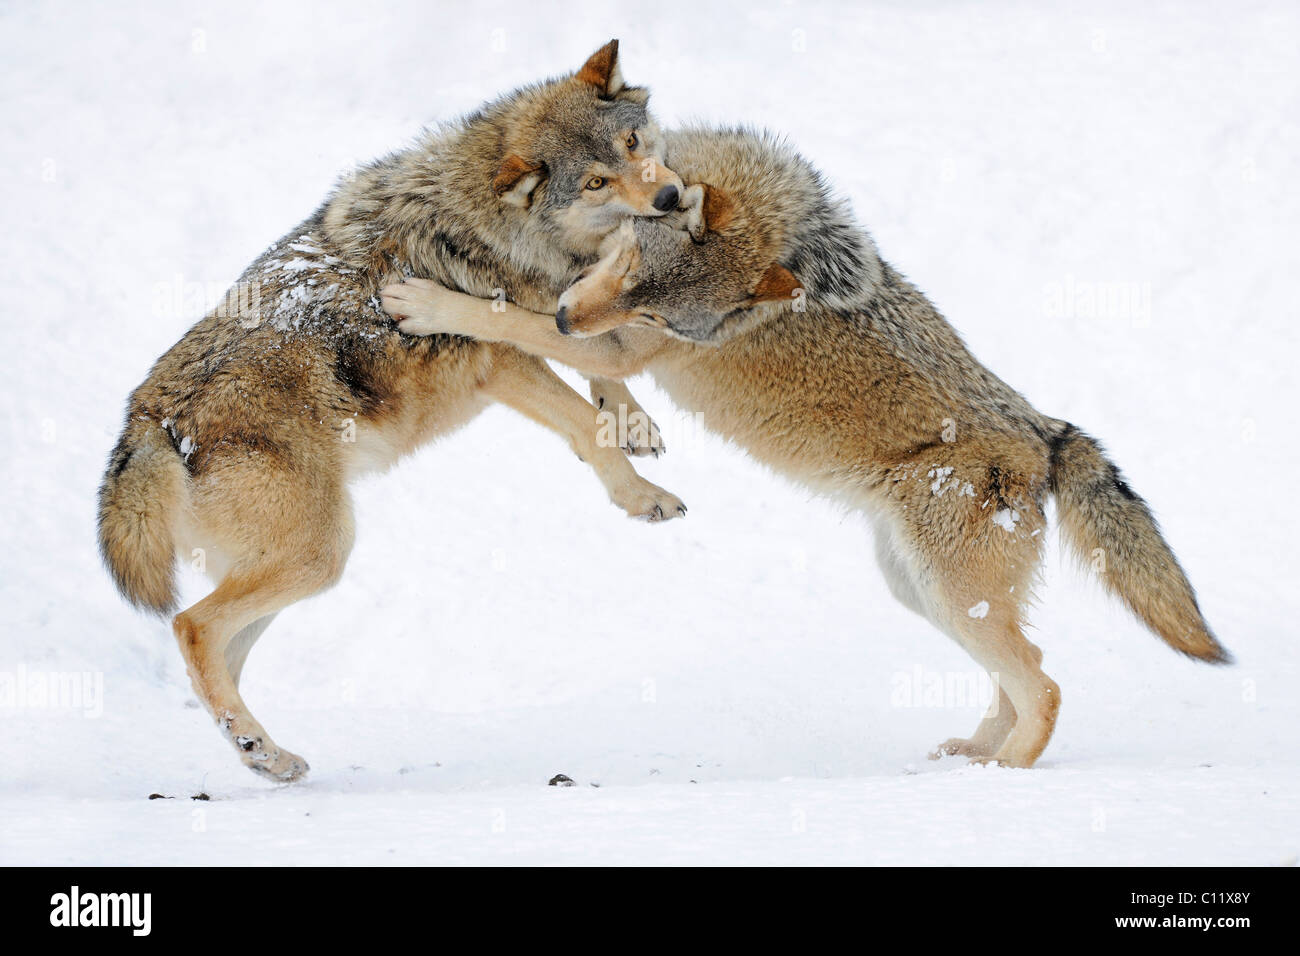 Fighting, playing wolves, cub, Mackenzie Wolf, Alaskan Tundra Wolf or Canadian Timber Wolf (Canis lupus occidentalis) Stock Photo